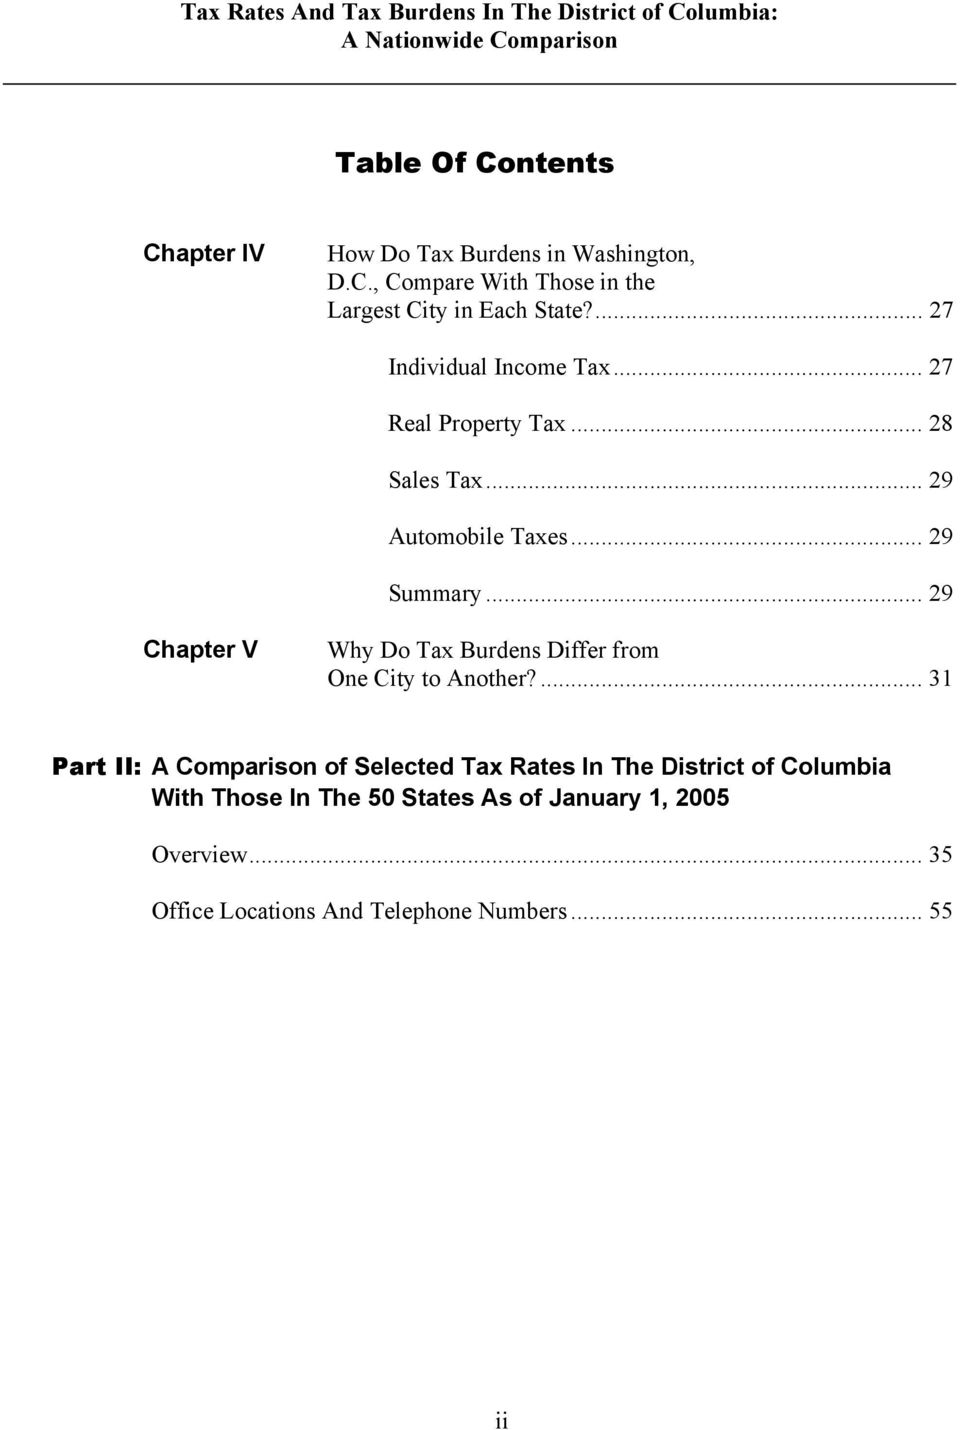 .. 29 Automobile Taxes... 29 Summary... 29 Chapter V Why Do Tax Burdens Differ from One City to Another?